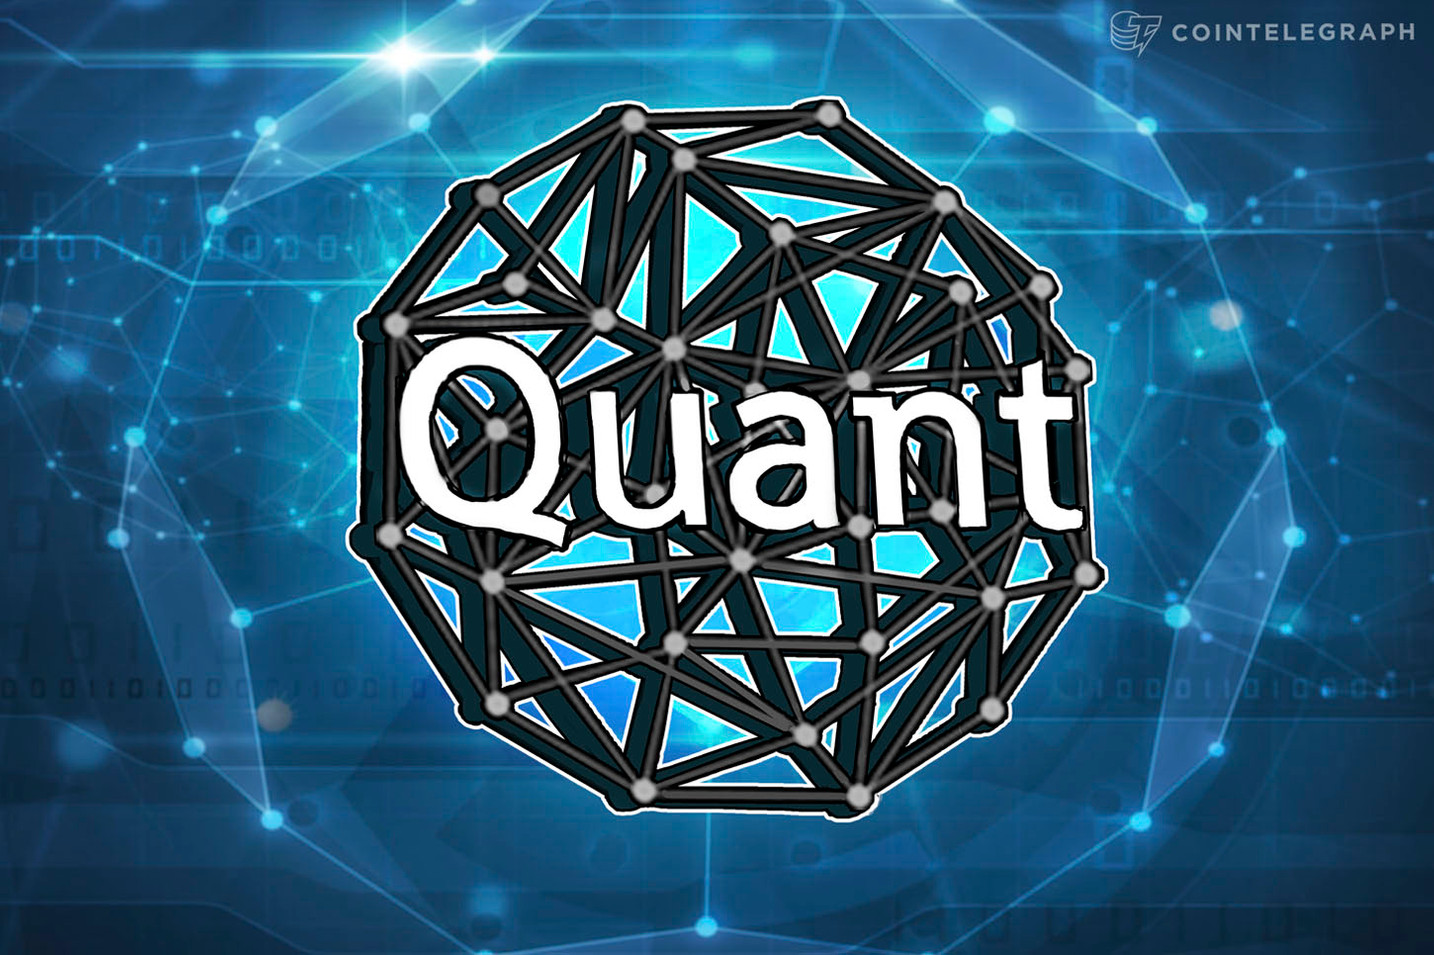 Quant Network's Overledger Set To Harness Blockchain Technology To Power The Next Industrial Revolution